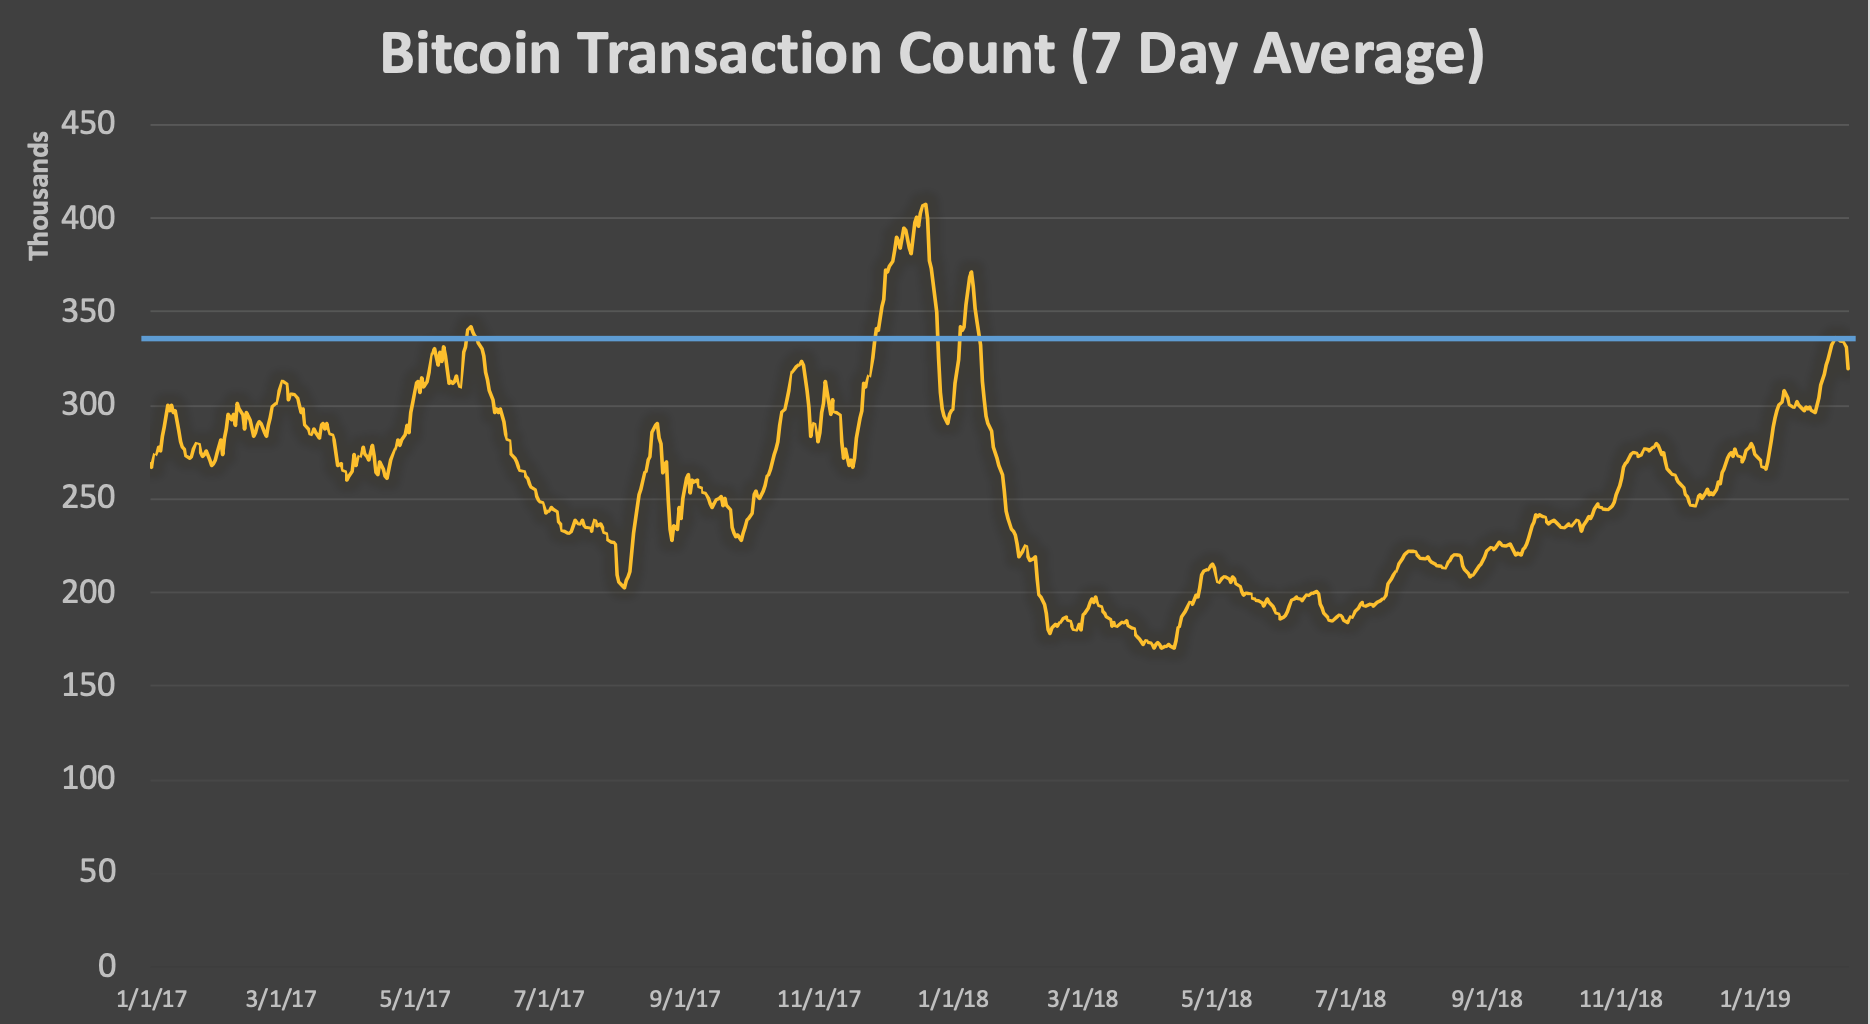 State of Blockchains: Bitcoin (BTC) Fees